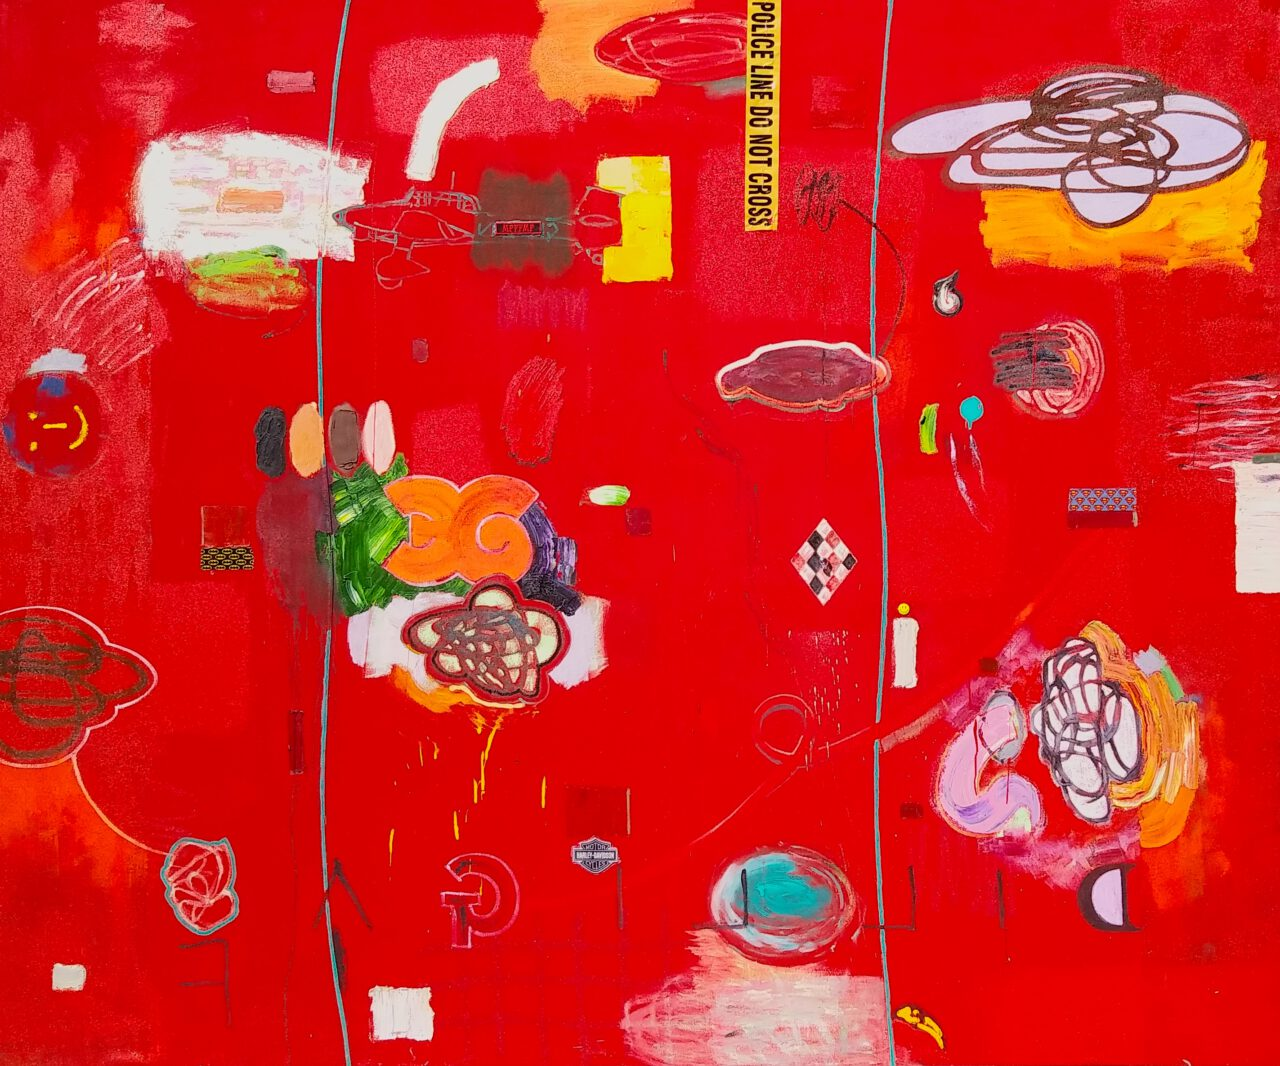 Parallax series - Parallax #4 (big red one). 2021. oil, acrylic, spray paint, plastic tape, sticker, metal ornament. 94 x 113 inches